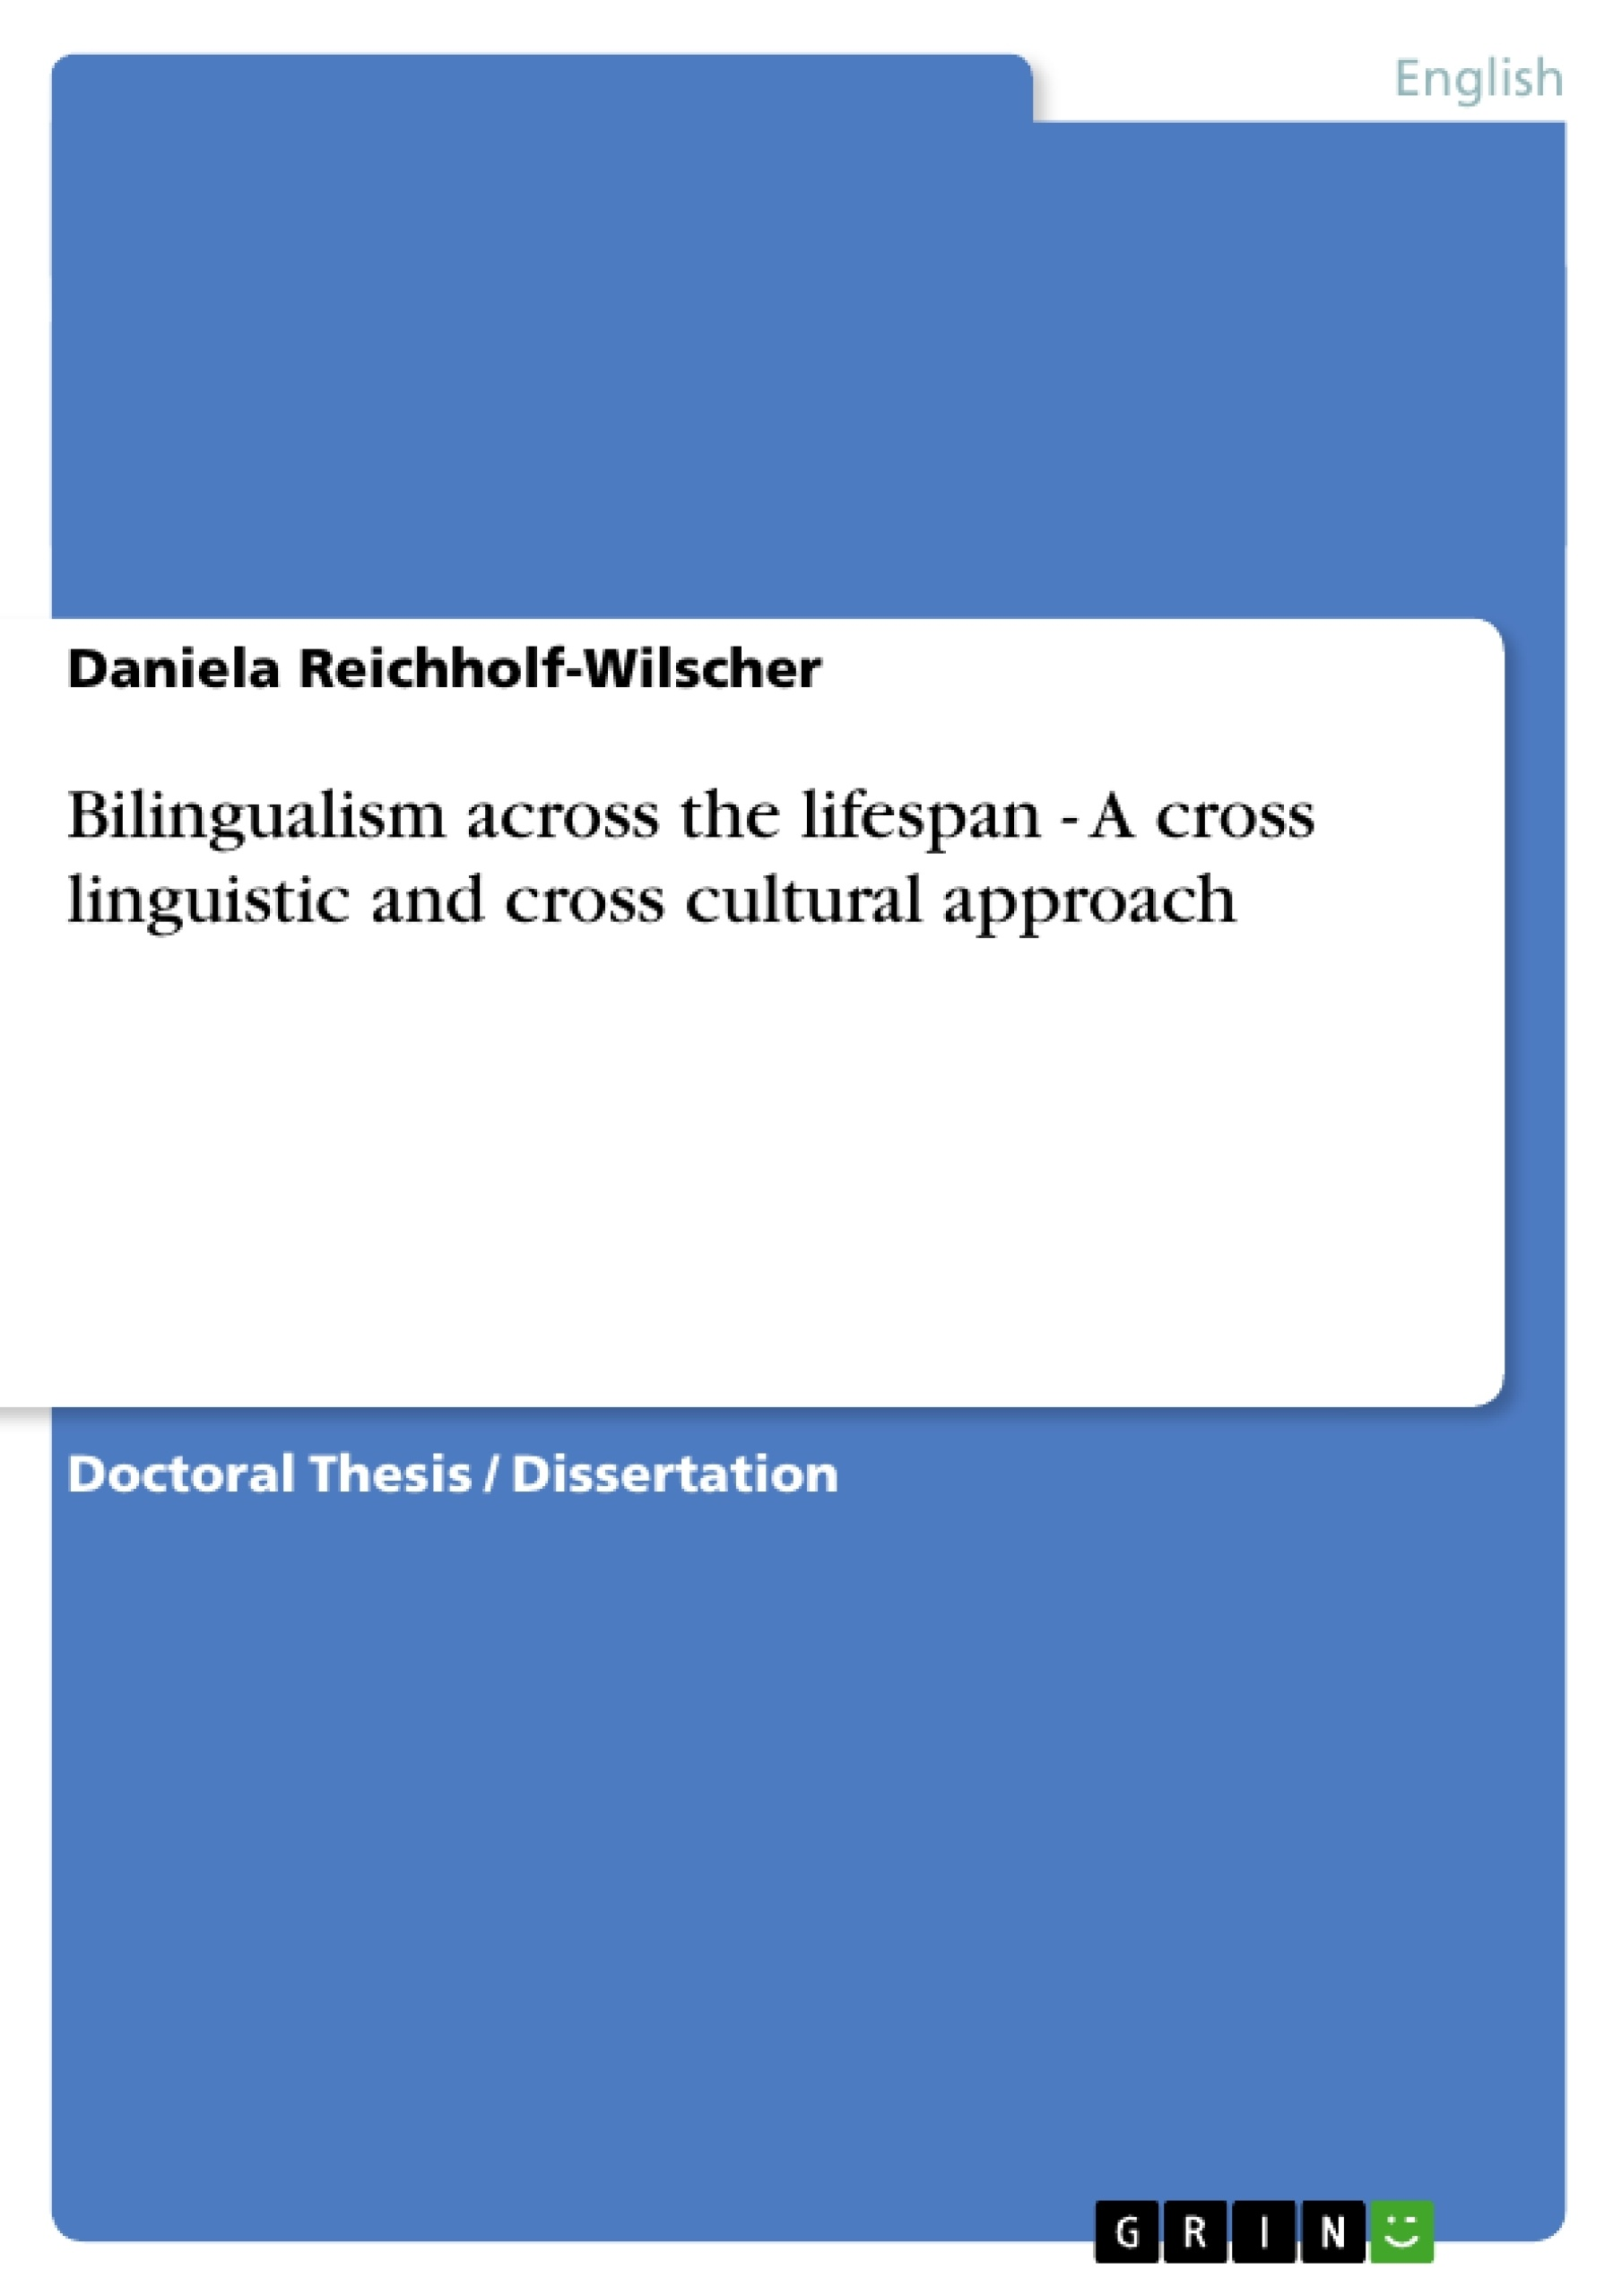 Title: Bilingualism across the lifespan - A cross linguistic and cross cultural approach